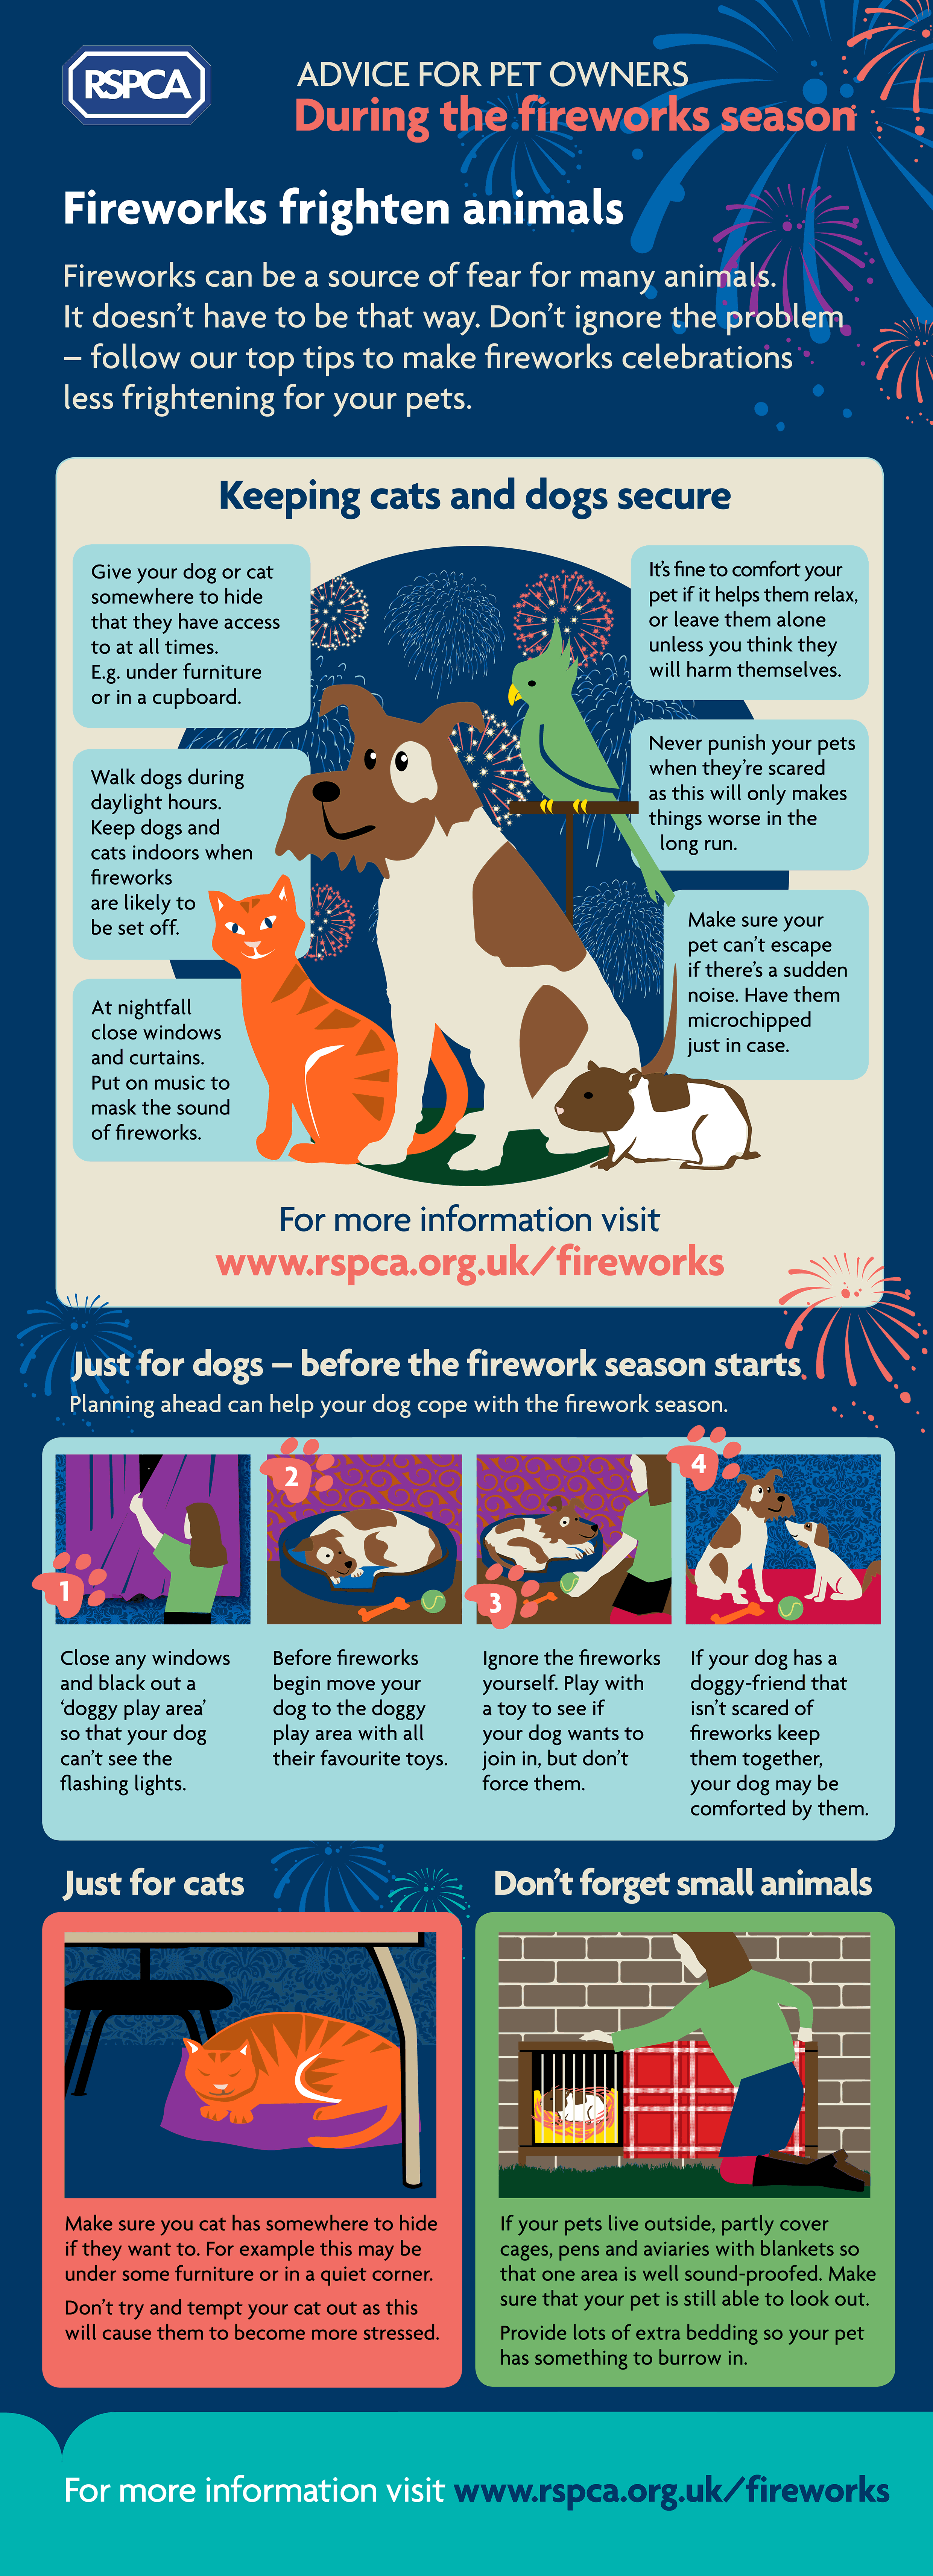 Advice for pet owners during the fireworks season © RSPCA